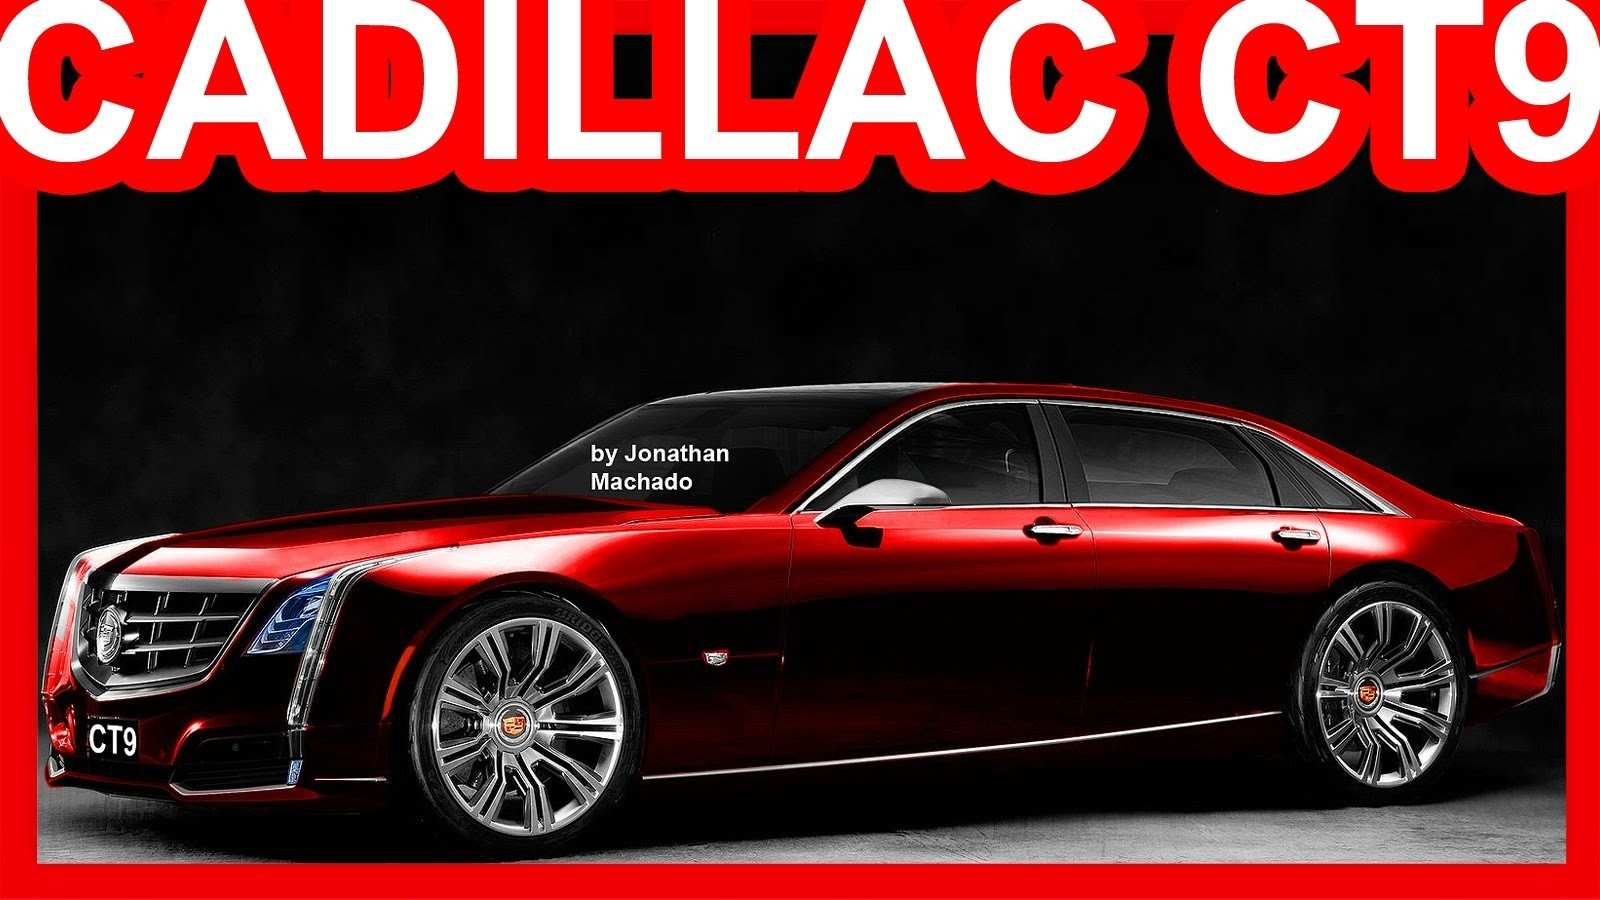 42 Best Review The Cadillac Deville 2019 New Concept Wallpaper with The Cadillac Deville 2019 New Concept